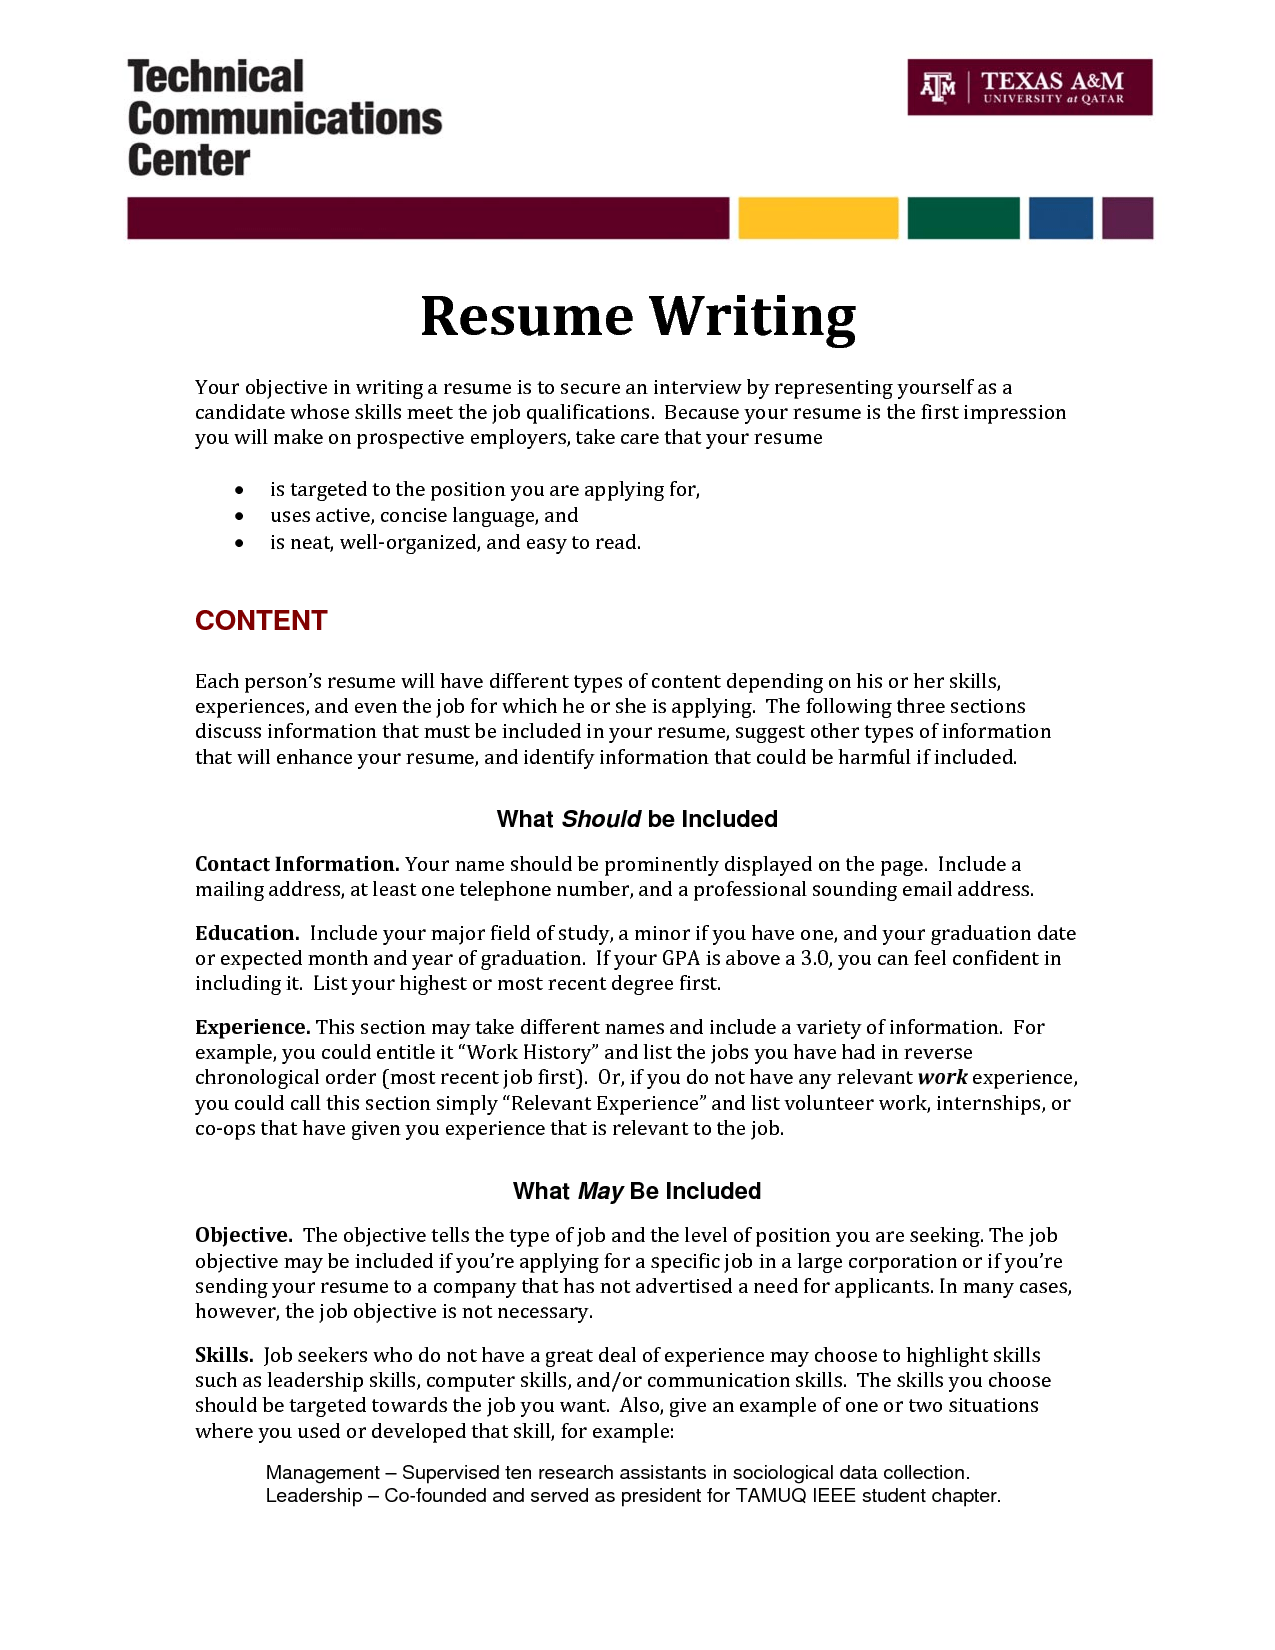 examples on how to write a resume reddit